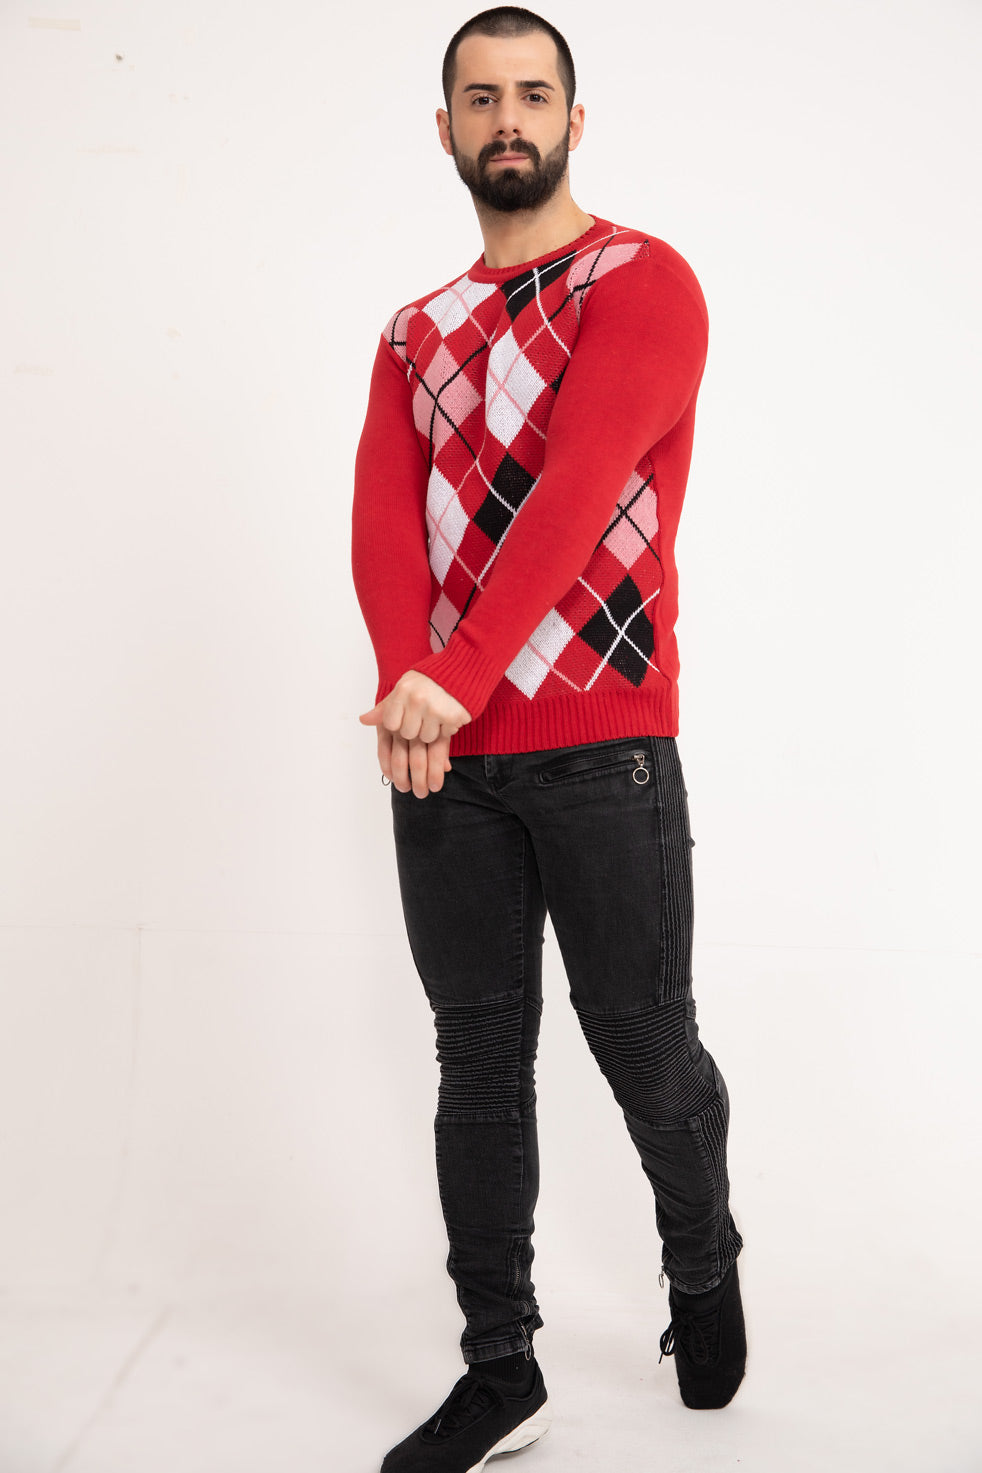 Red Patterned Men's Knitwear Sweater